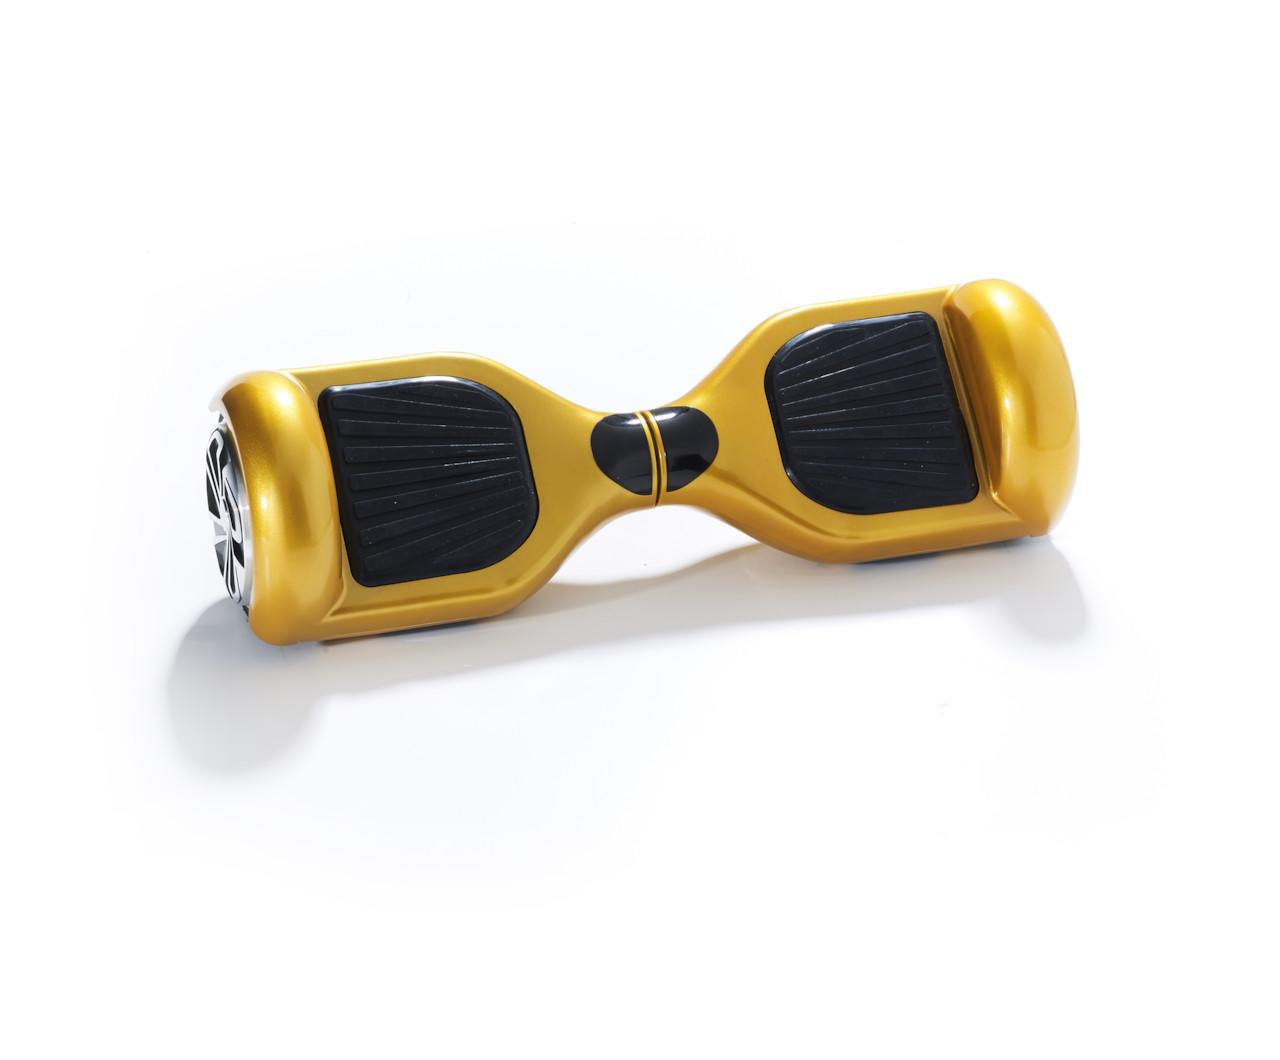 H1 6 5 Gold Bluetooth Segway Hoverboard